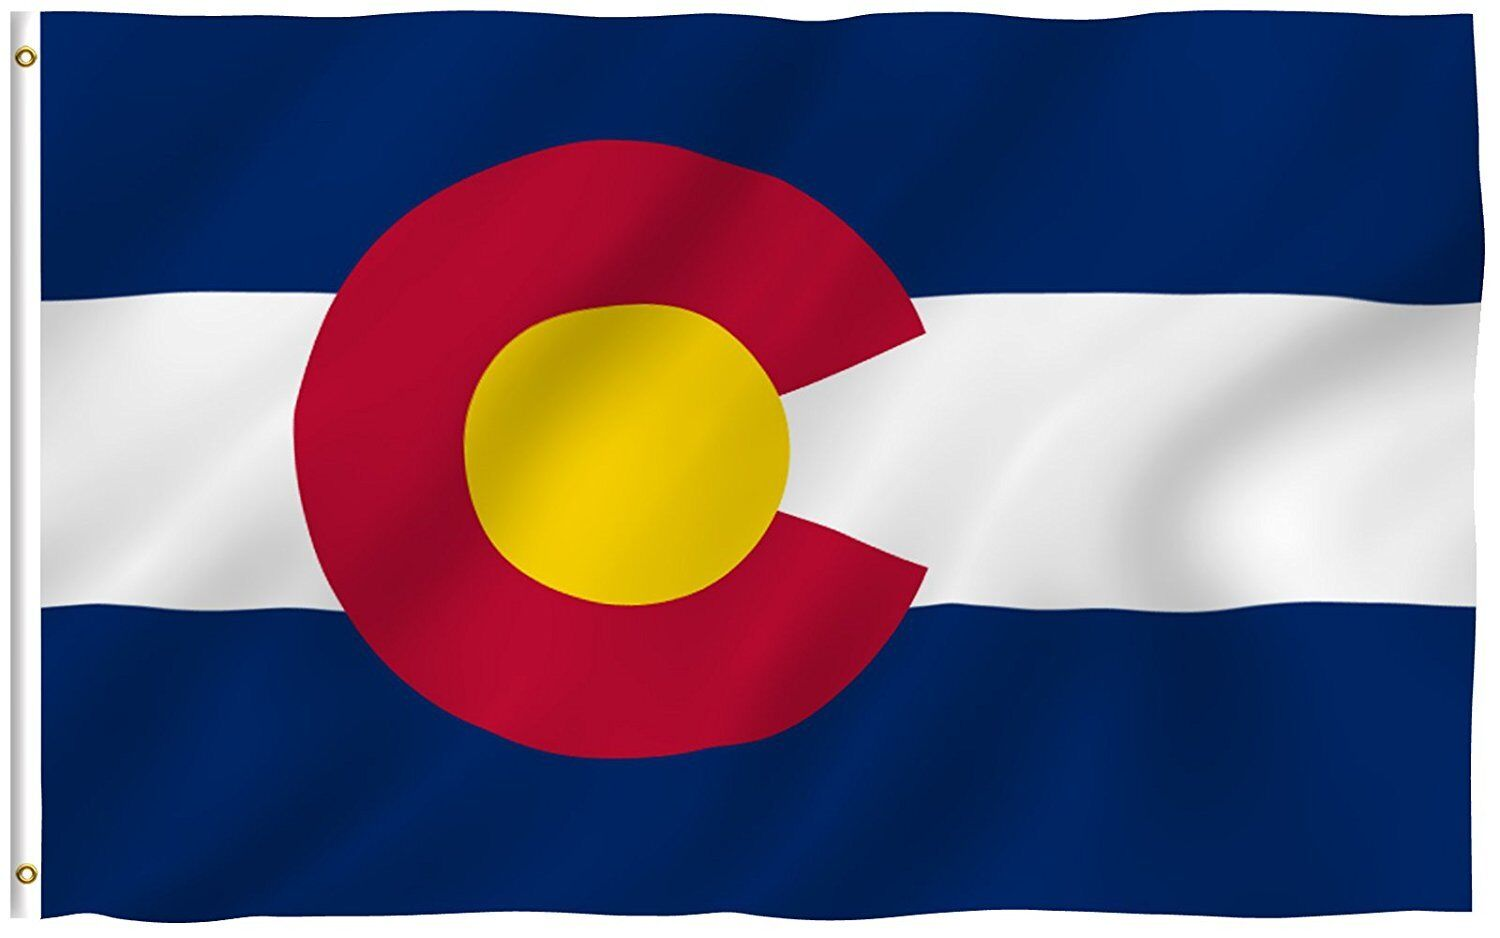 State of Colorado 3x5 Flag Printed Polyester